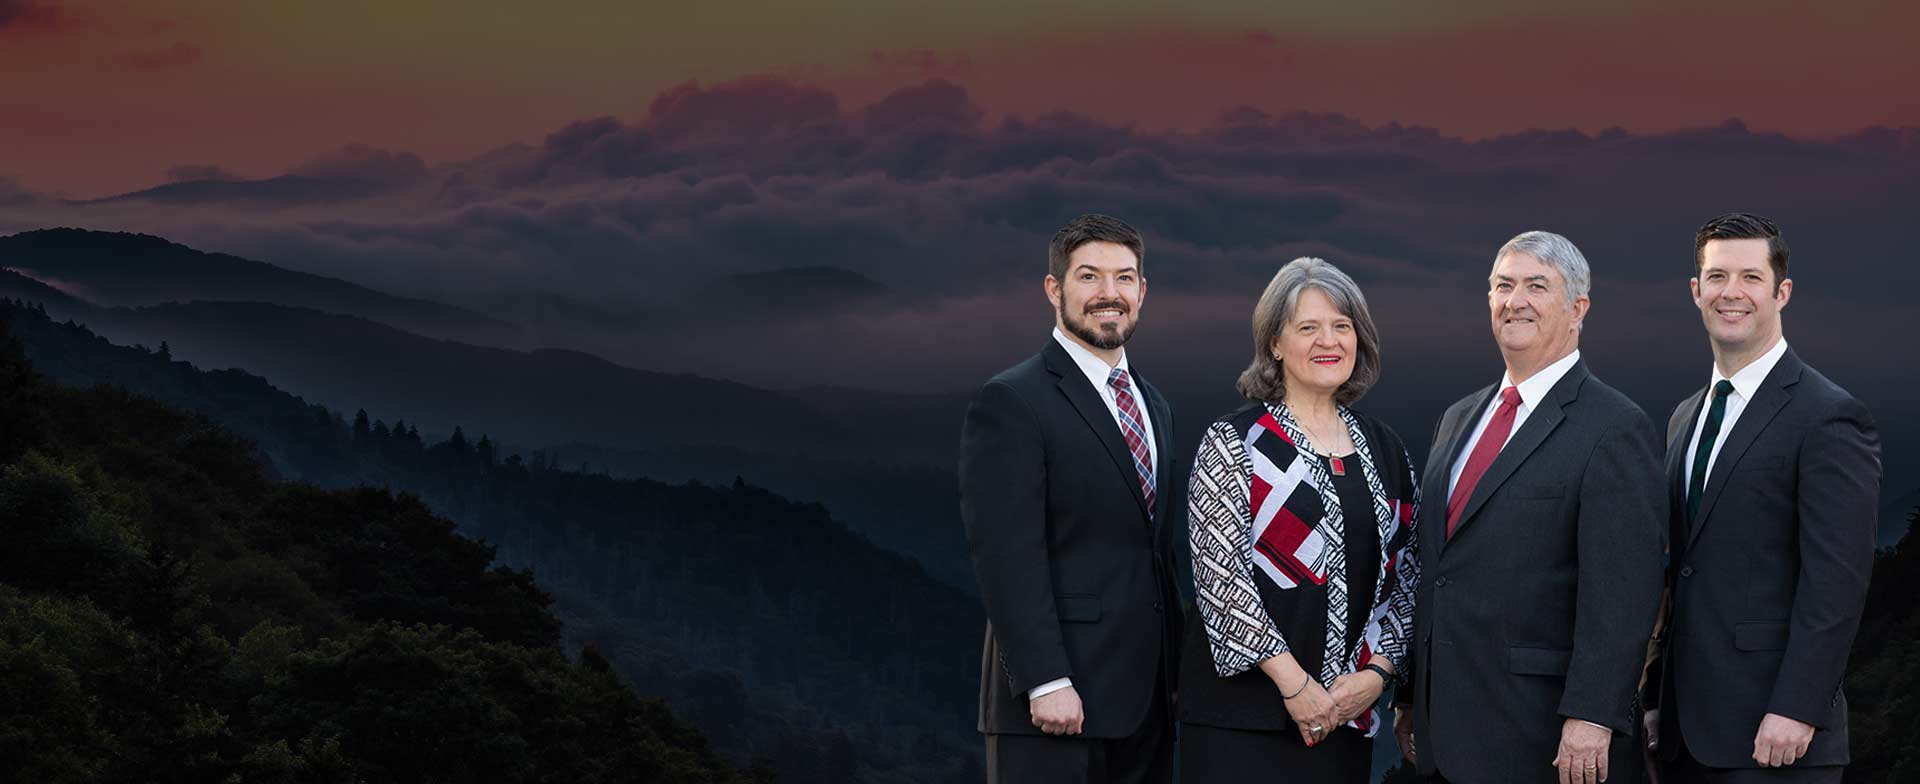 Harper Sylva, NC Lawyer personal injury and workmans compensation